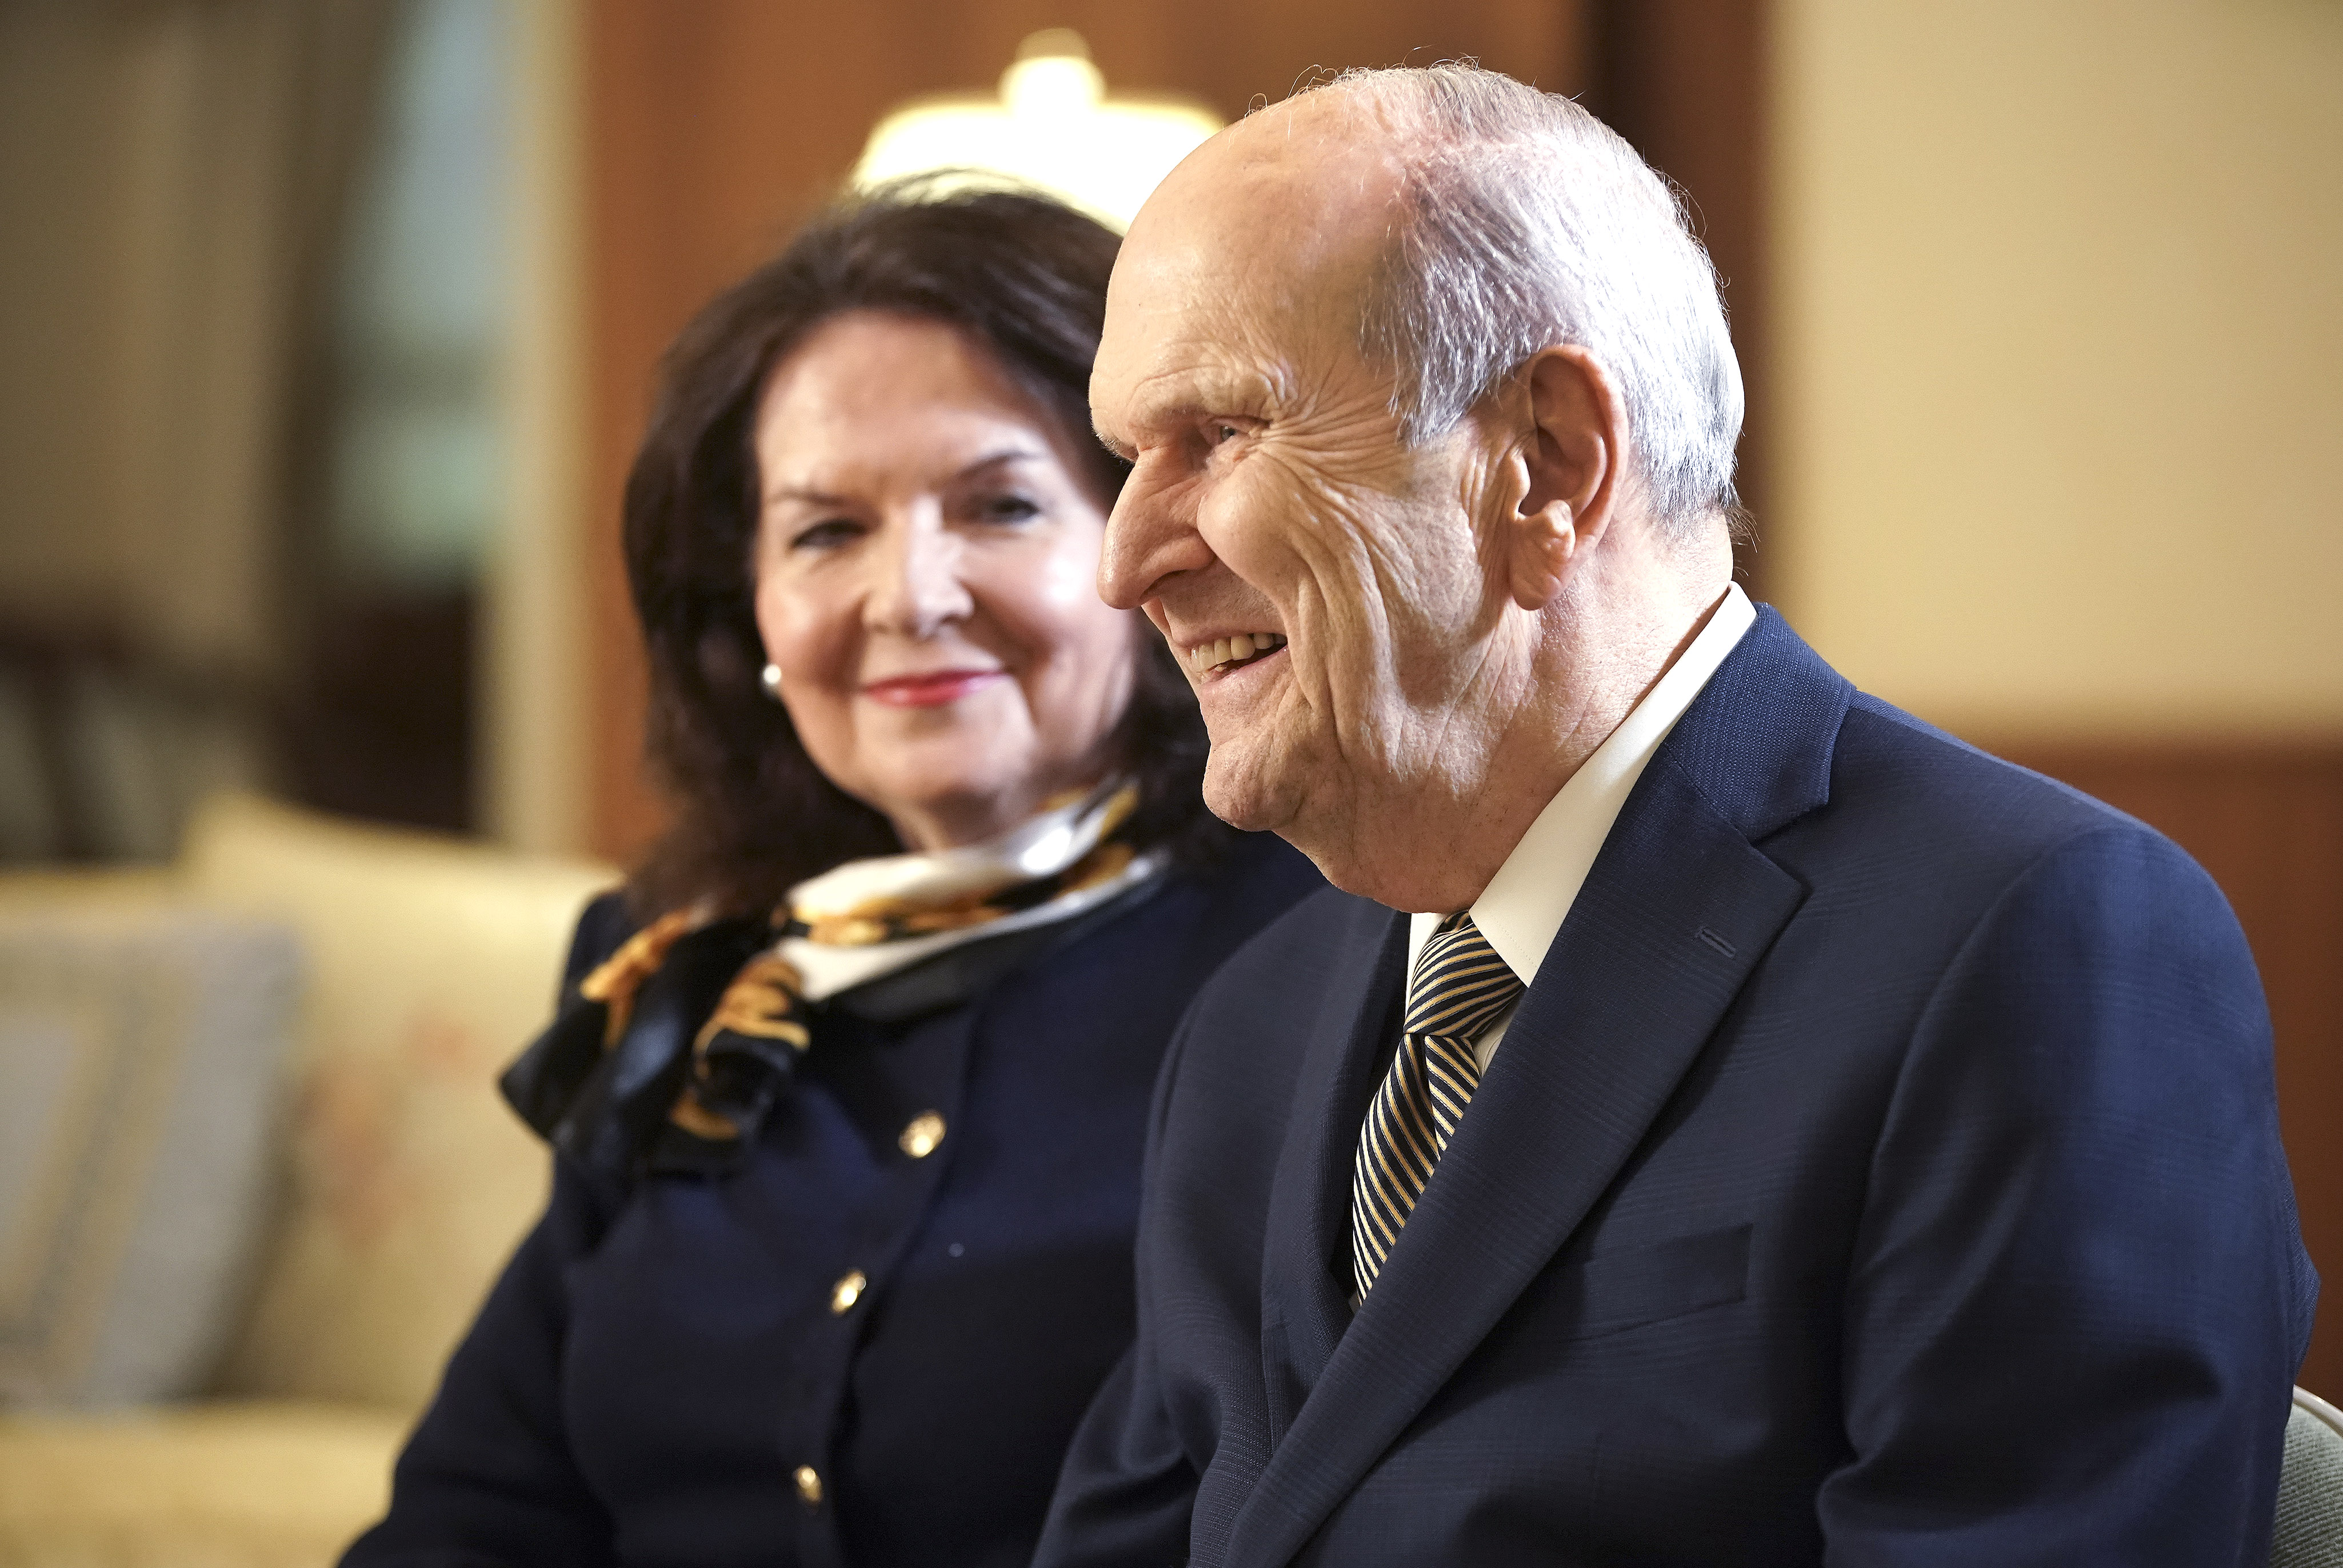 President Russell M. Nelson, of The Church of Jesus Christ of Latter-day Saints, and his wife Sister Wendy Nelson during an interview in Salt Lake City on Friday May 29, 2020.